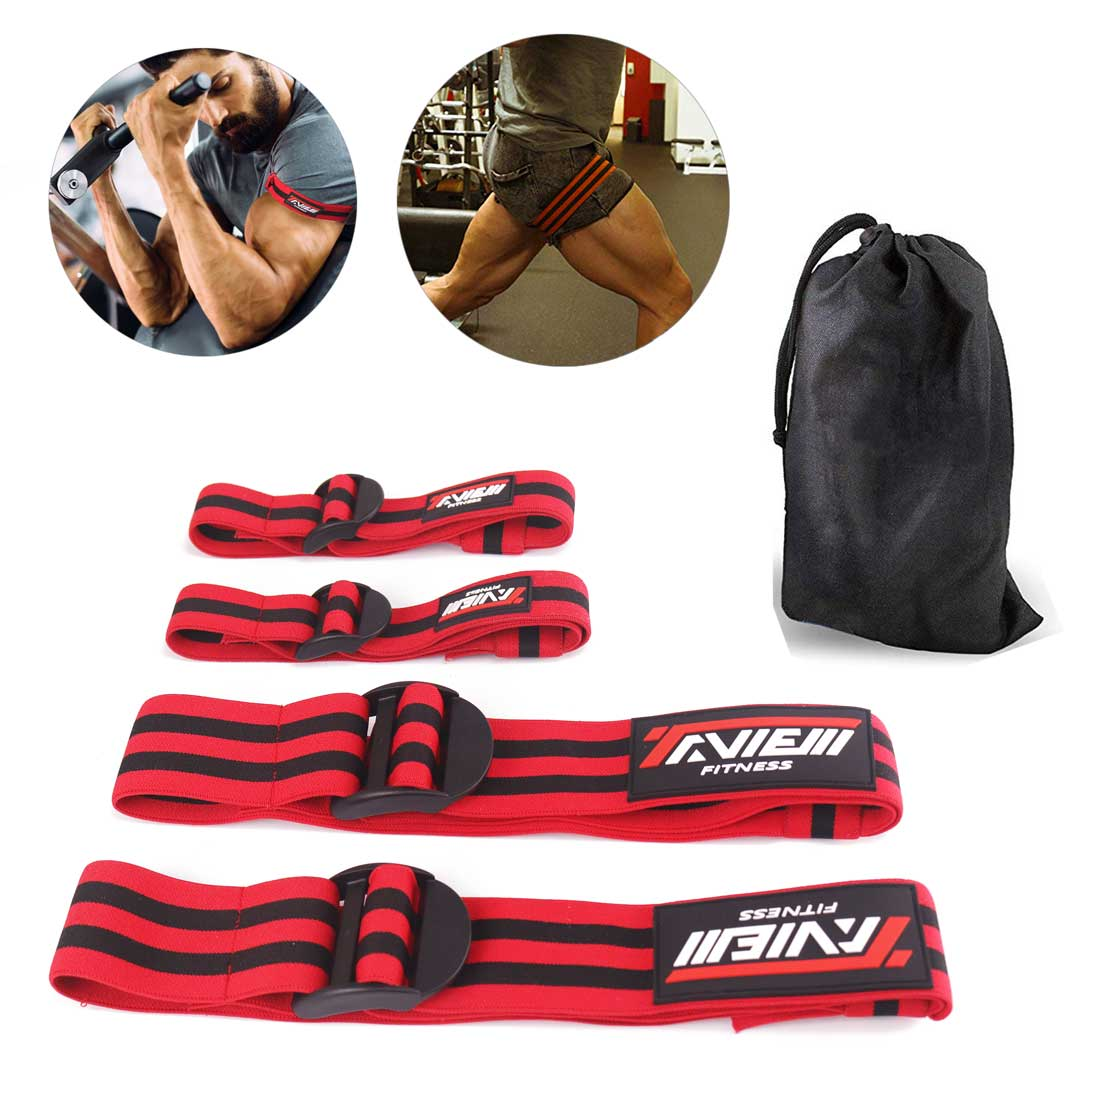 Fitness Occlusion Training Bands Bodybuilding Weight Blood Flow Restriction Bands Arm Leg Wraps Fast Muscle Growth Gym Equipment